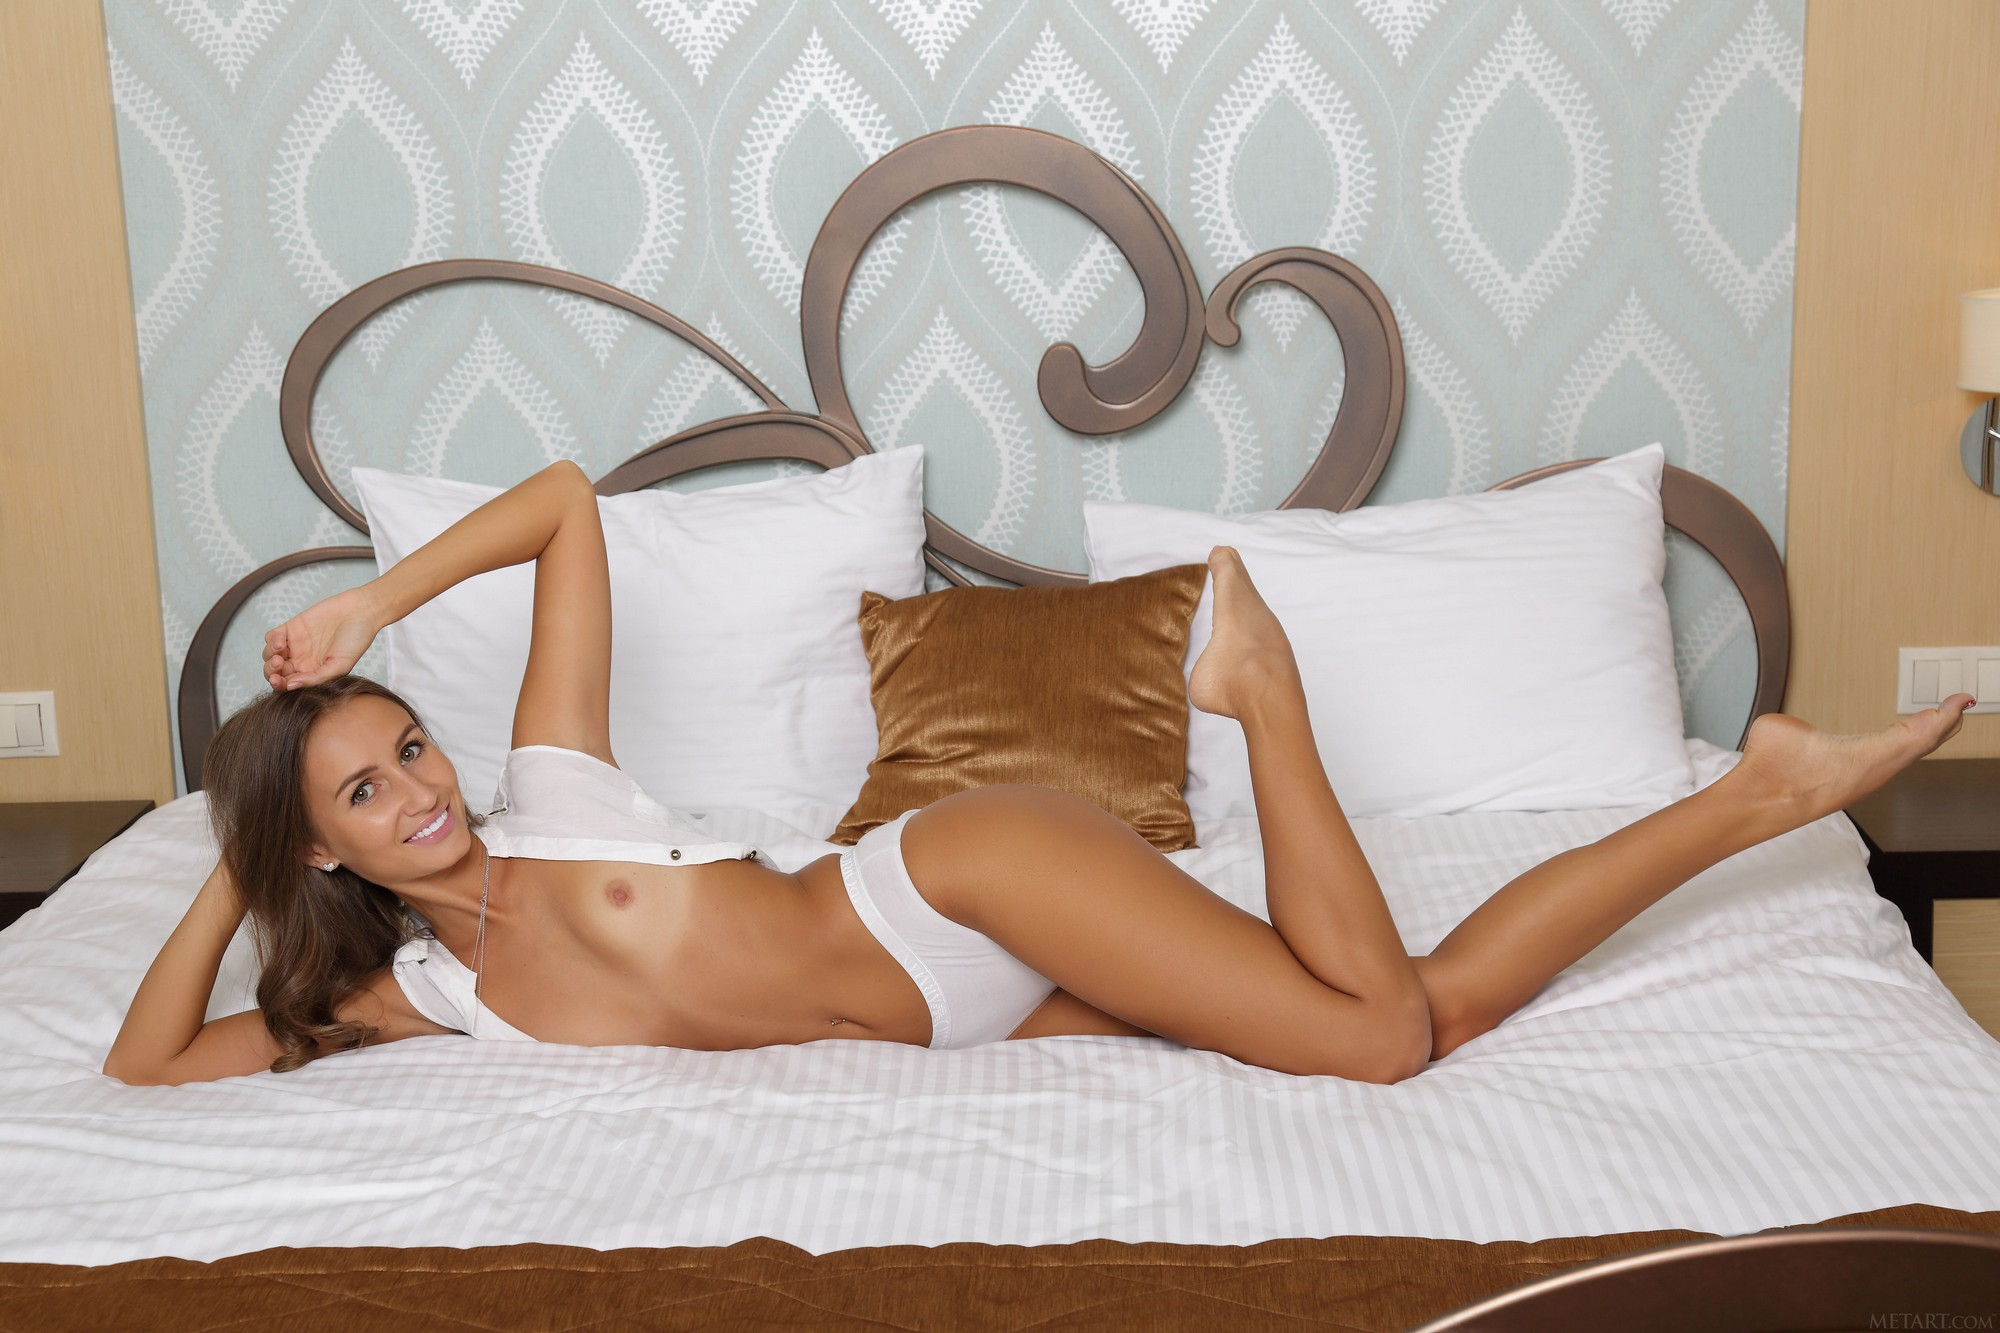 shaved-pretty-brunette-sandy-a-with-small-tits-from-met-art-in-bed-10.jpg